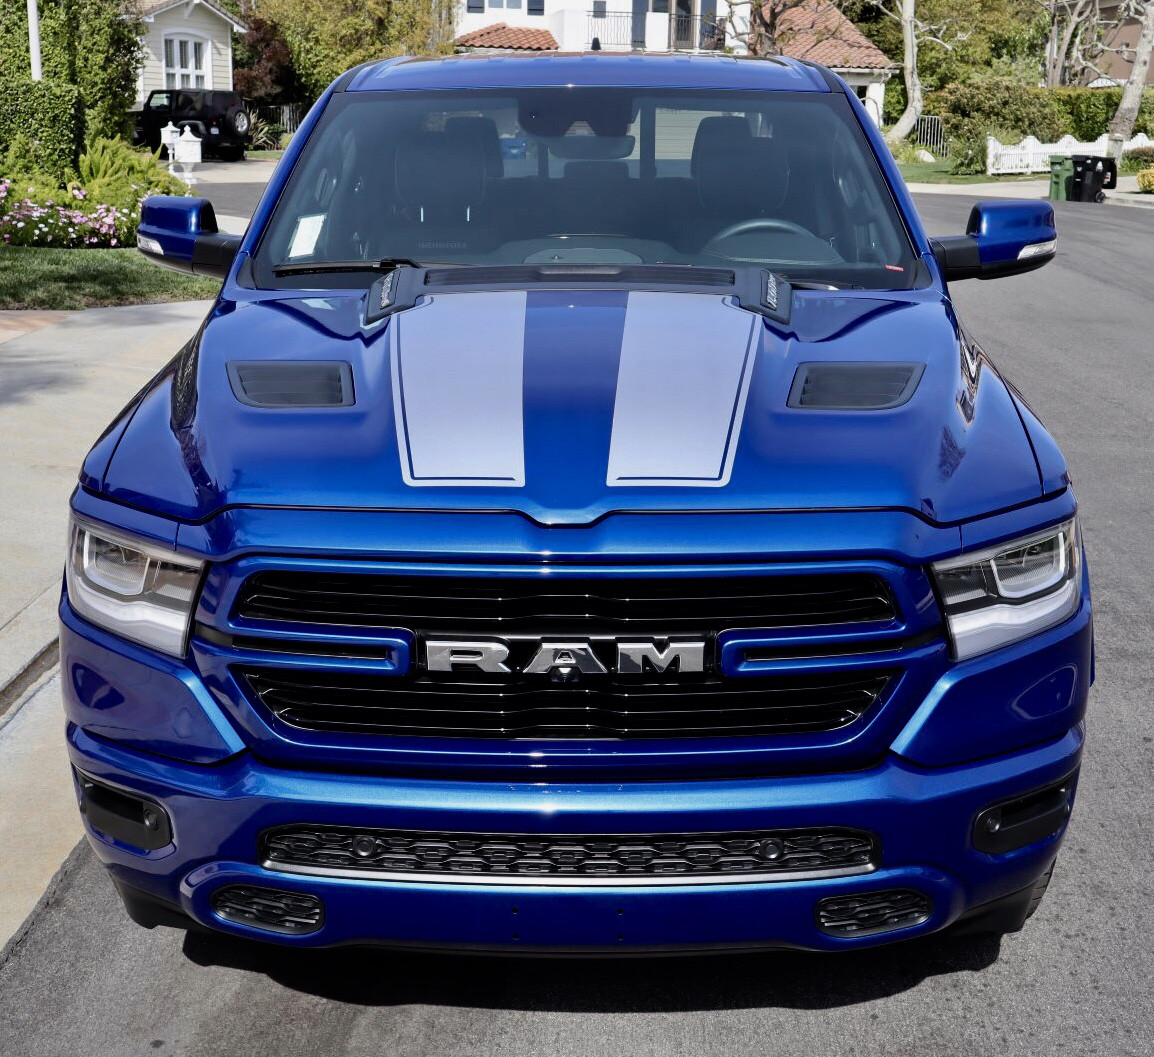 2019 - Up Ram 1500 Rebel / Sport Hood Decal Graphics